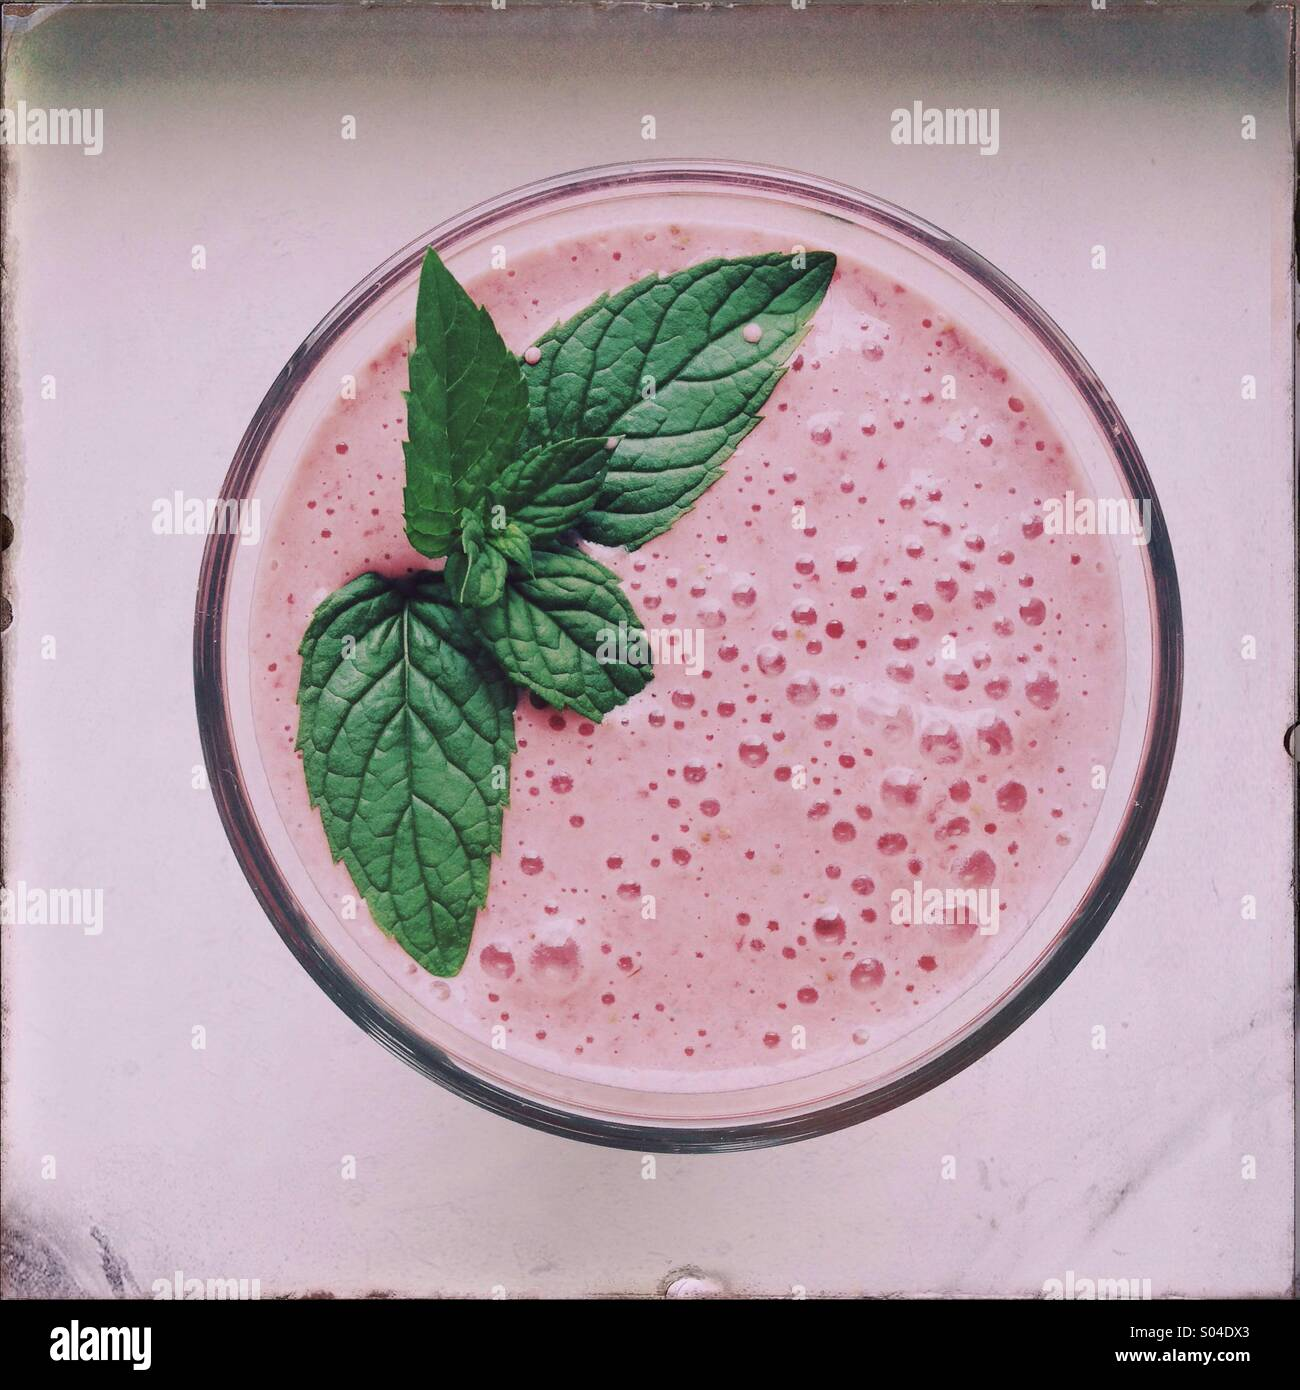 A strawberry smoothie with mint leaves is seen. - Stock Image